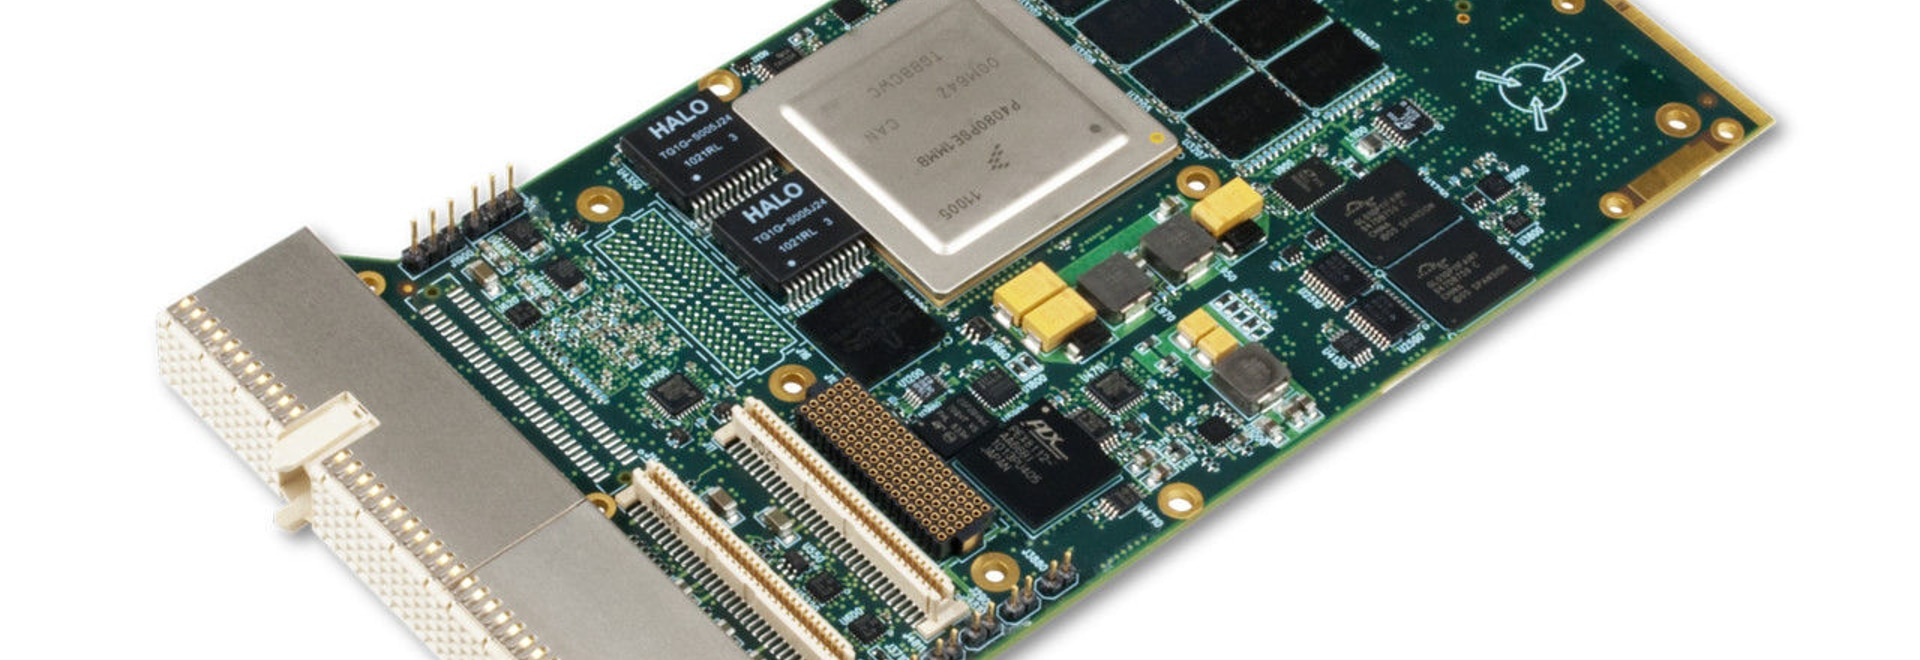 NEW: CompactPCI single-board computer by Extreme Engineering ...